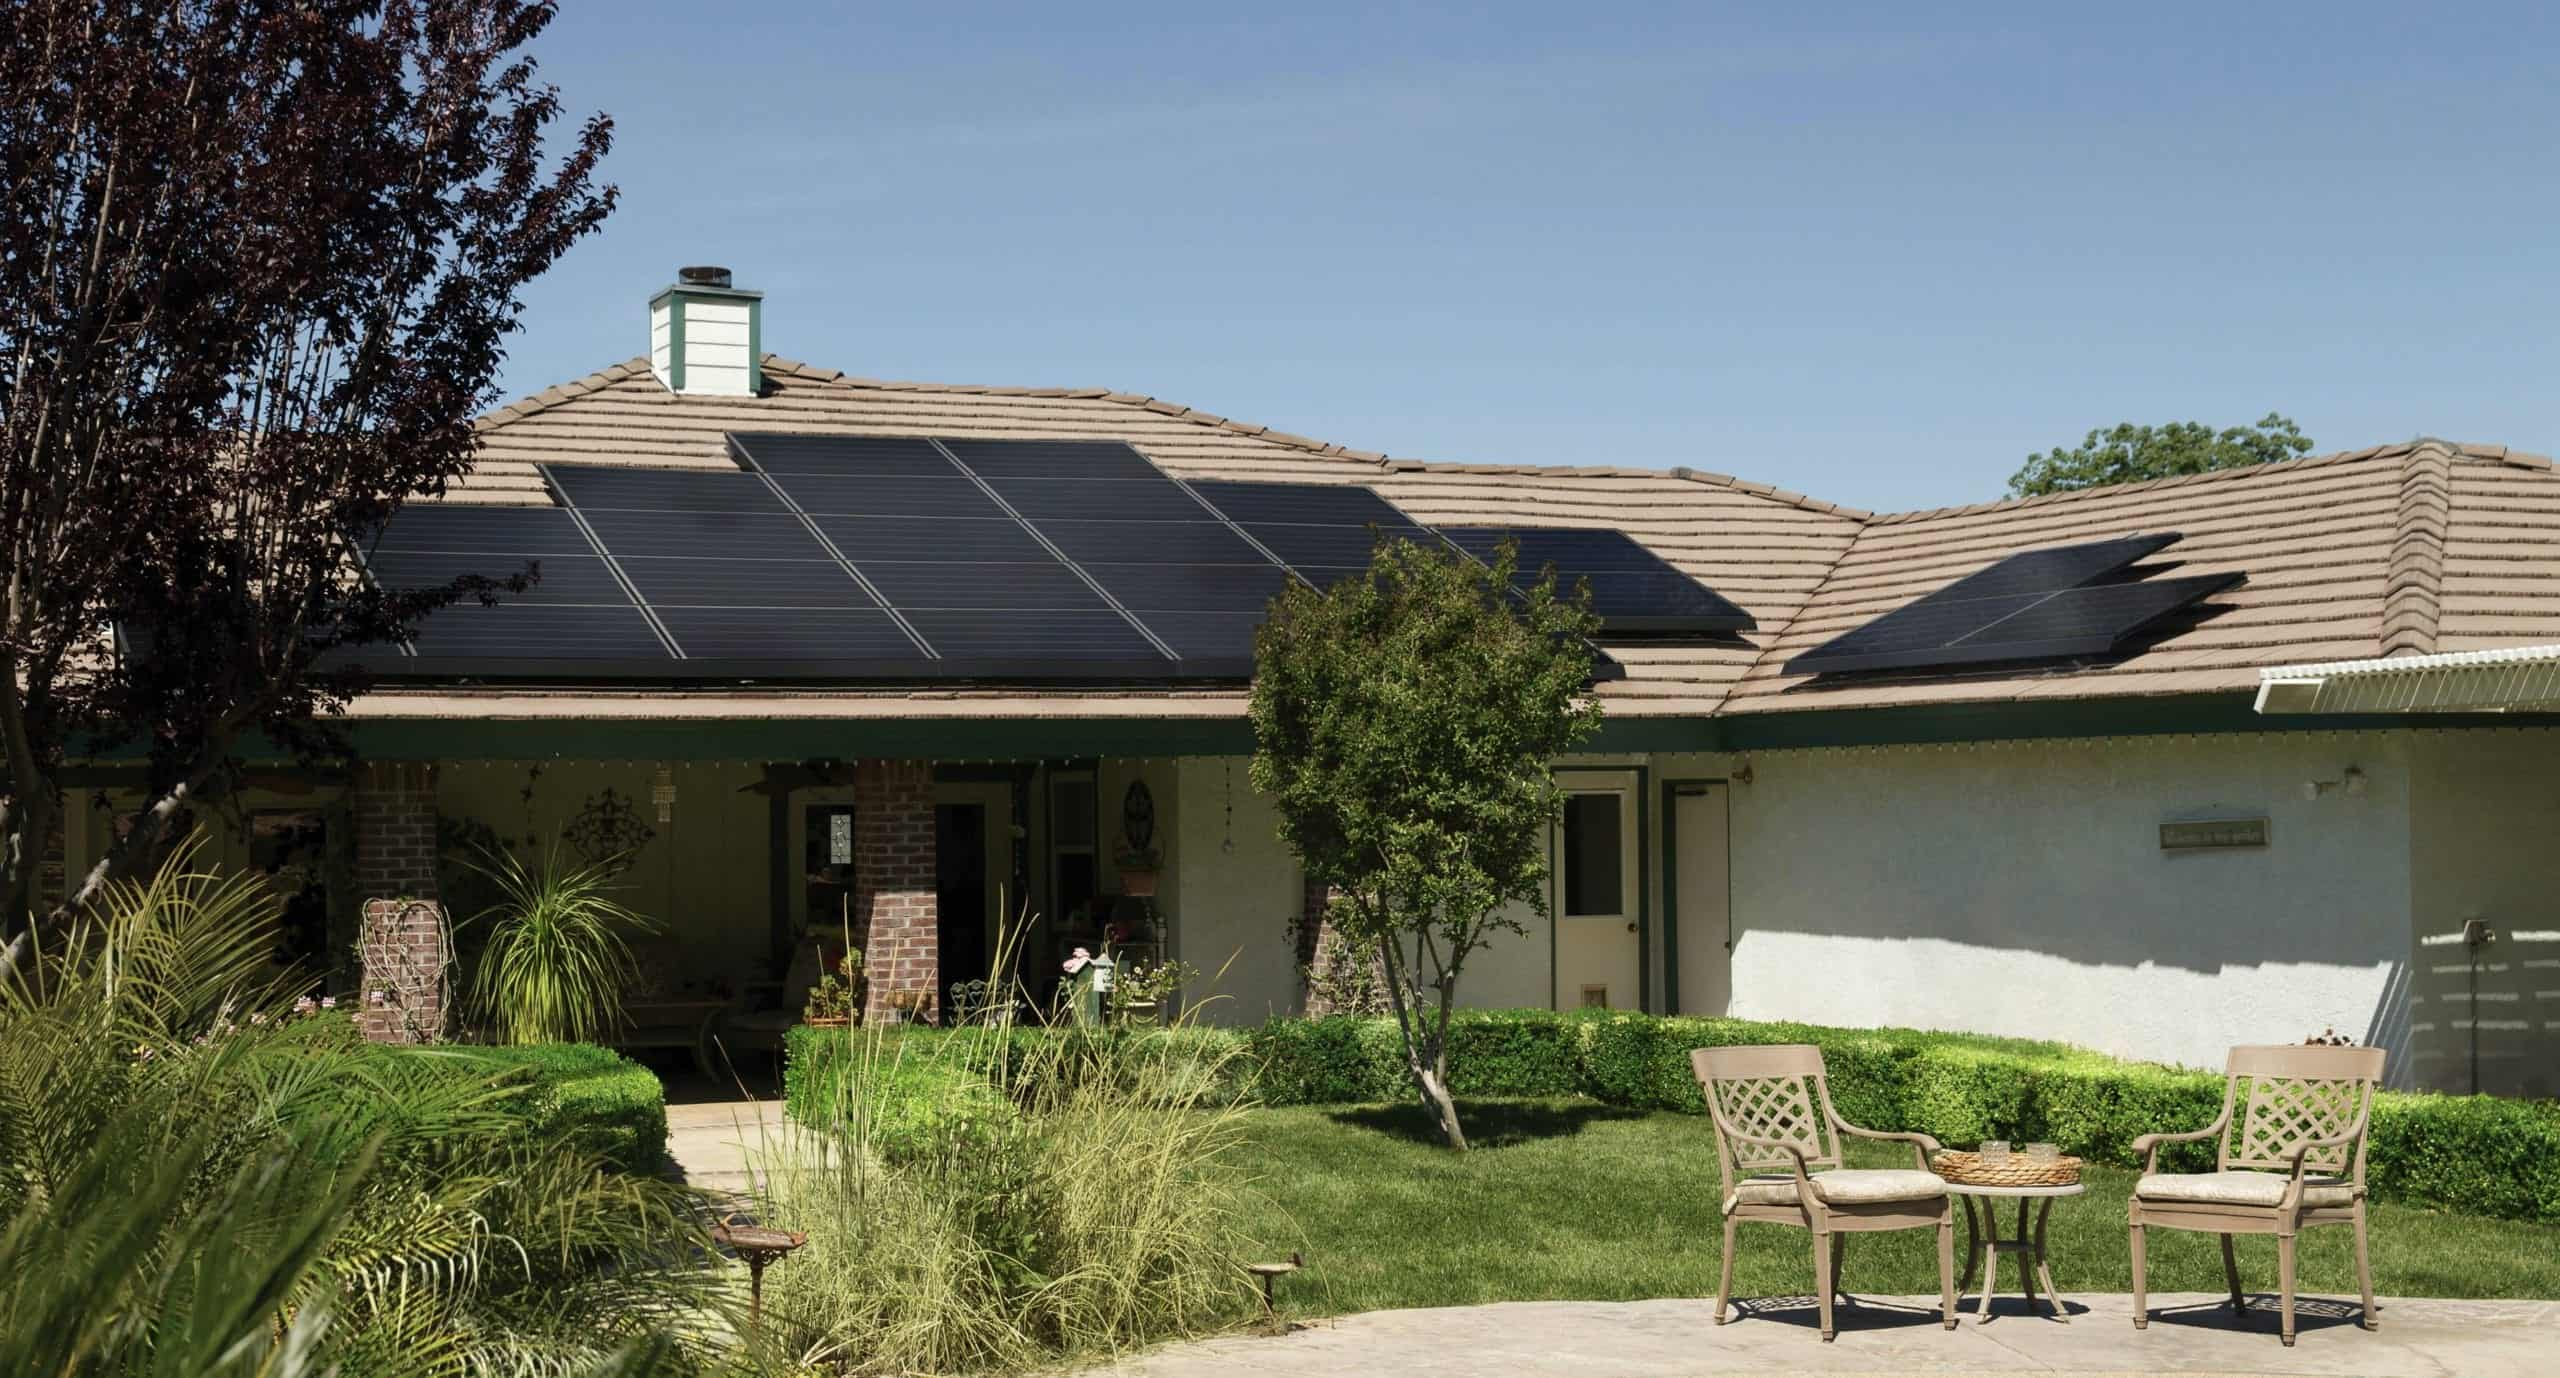 How To: Make the Most of Your Solar Panels